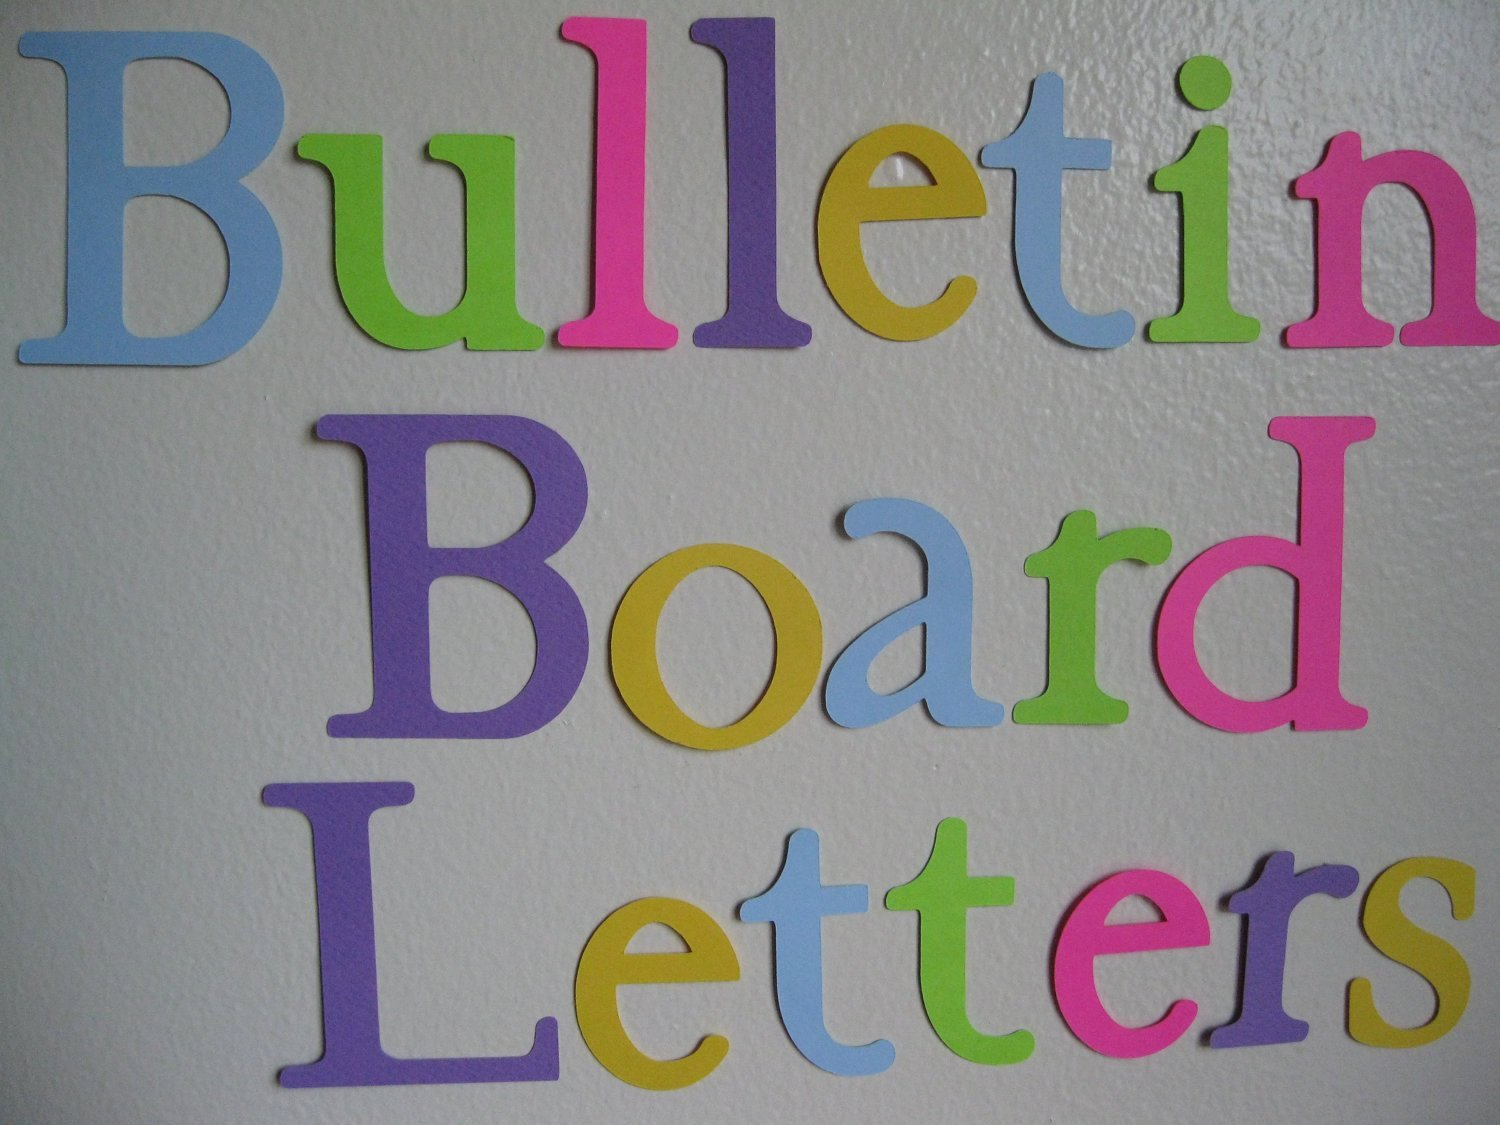 Free Letter Templates for Bulletin Boards Elegant 20 30 Die Cut Letters Bulletin Board Letters